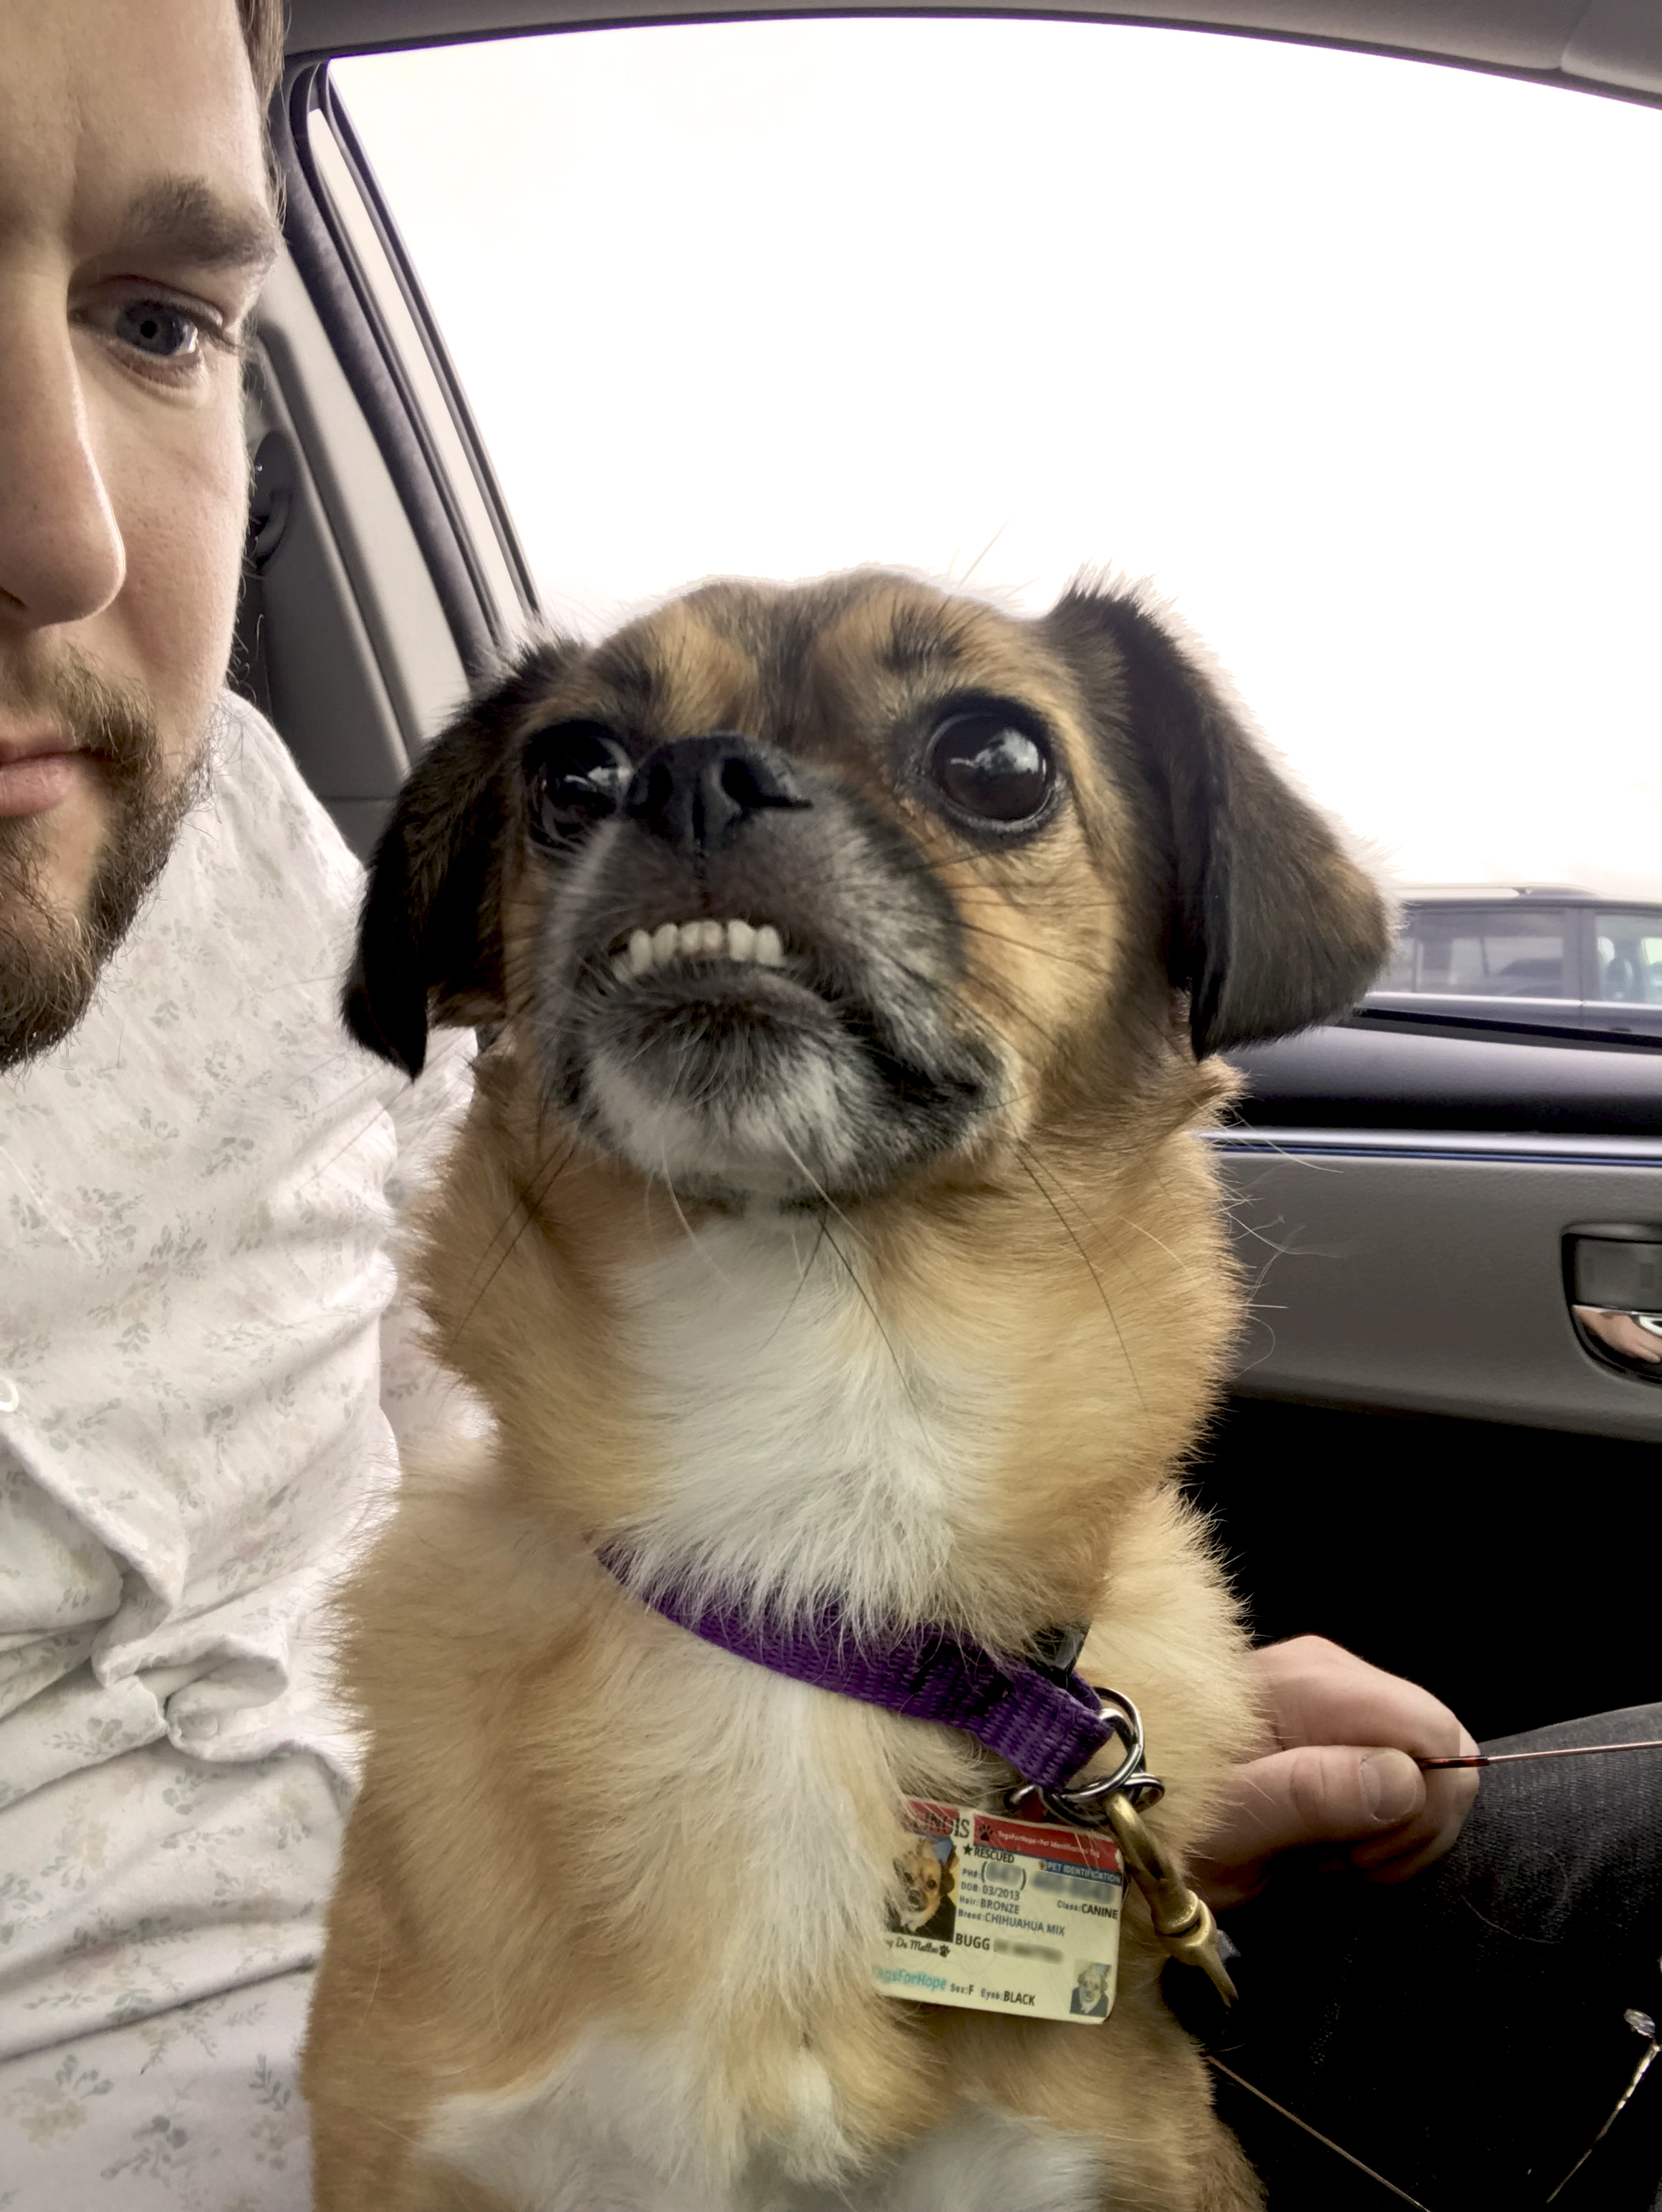 Kyle with small dog in car.